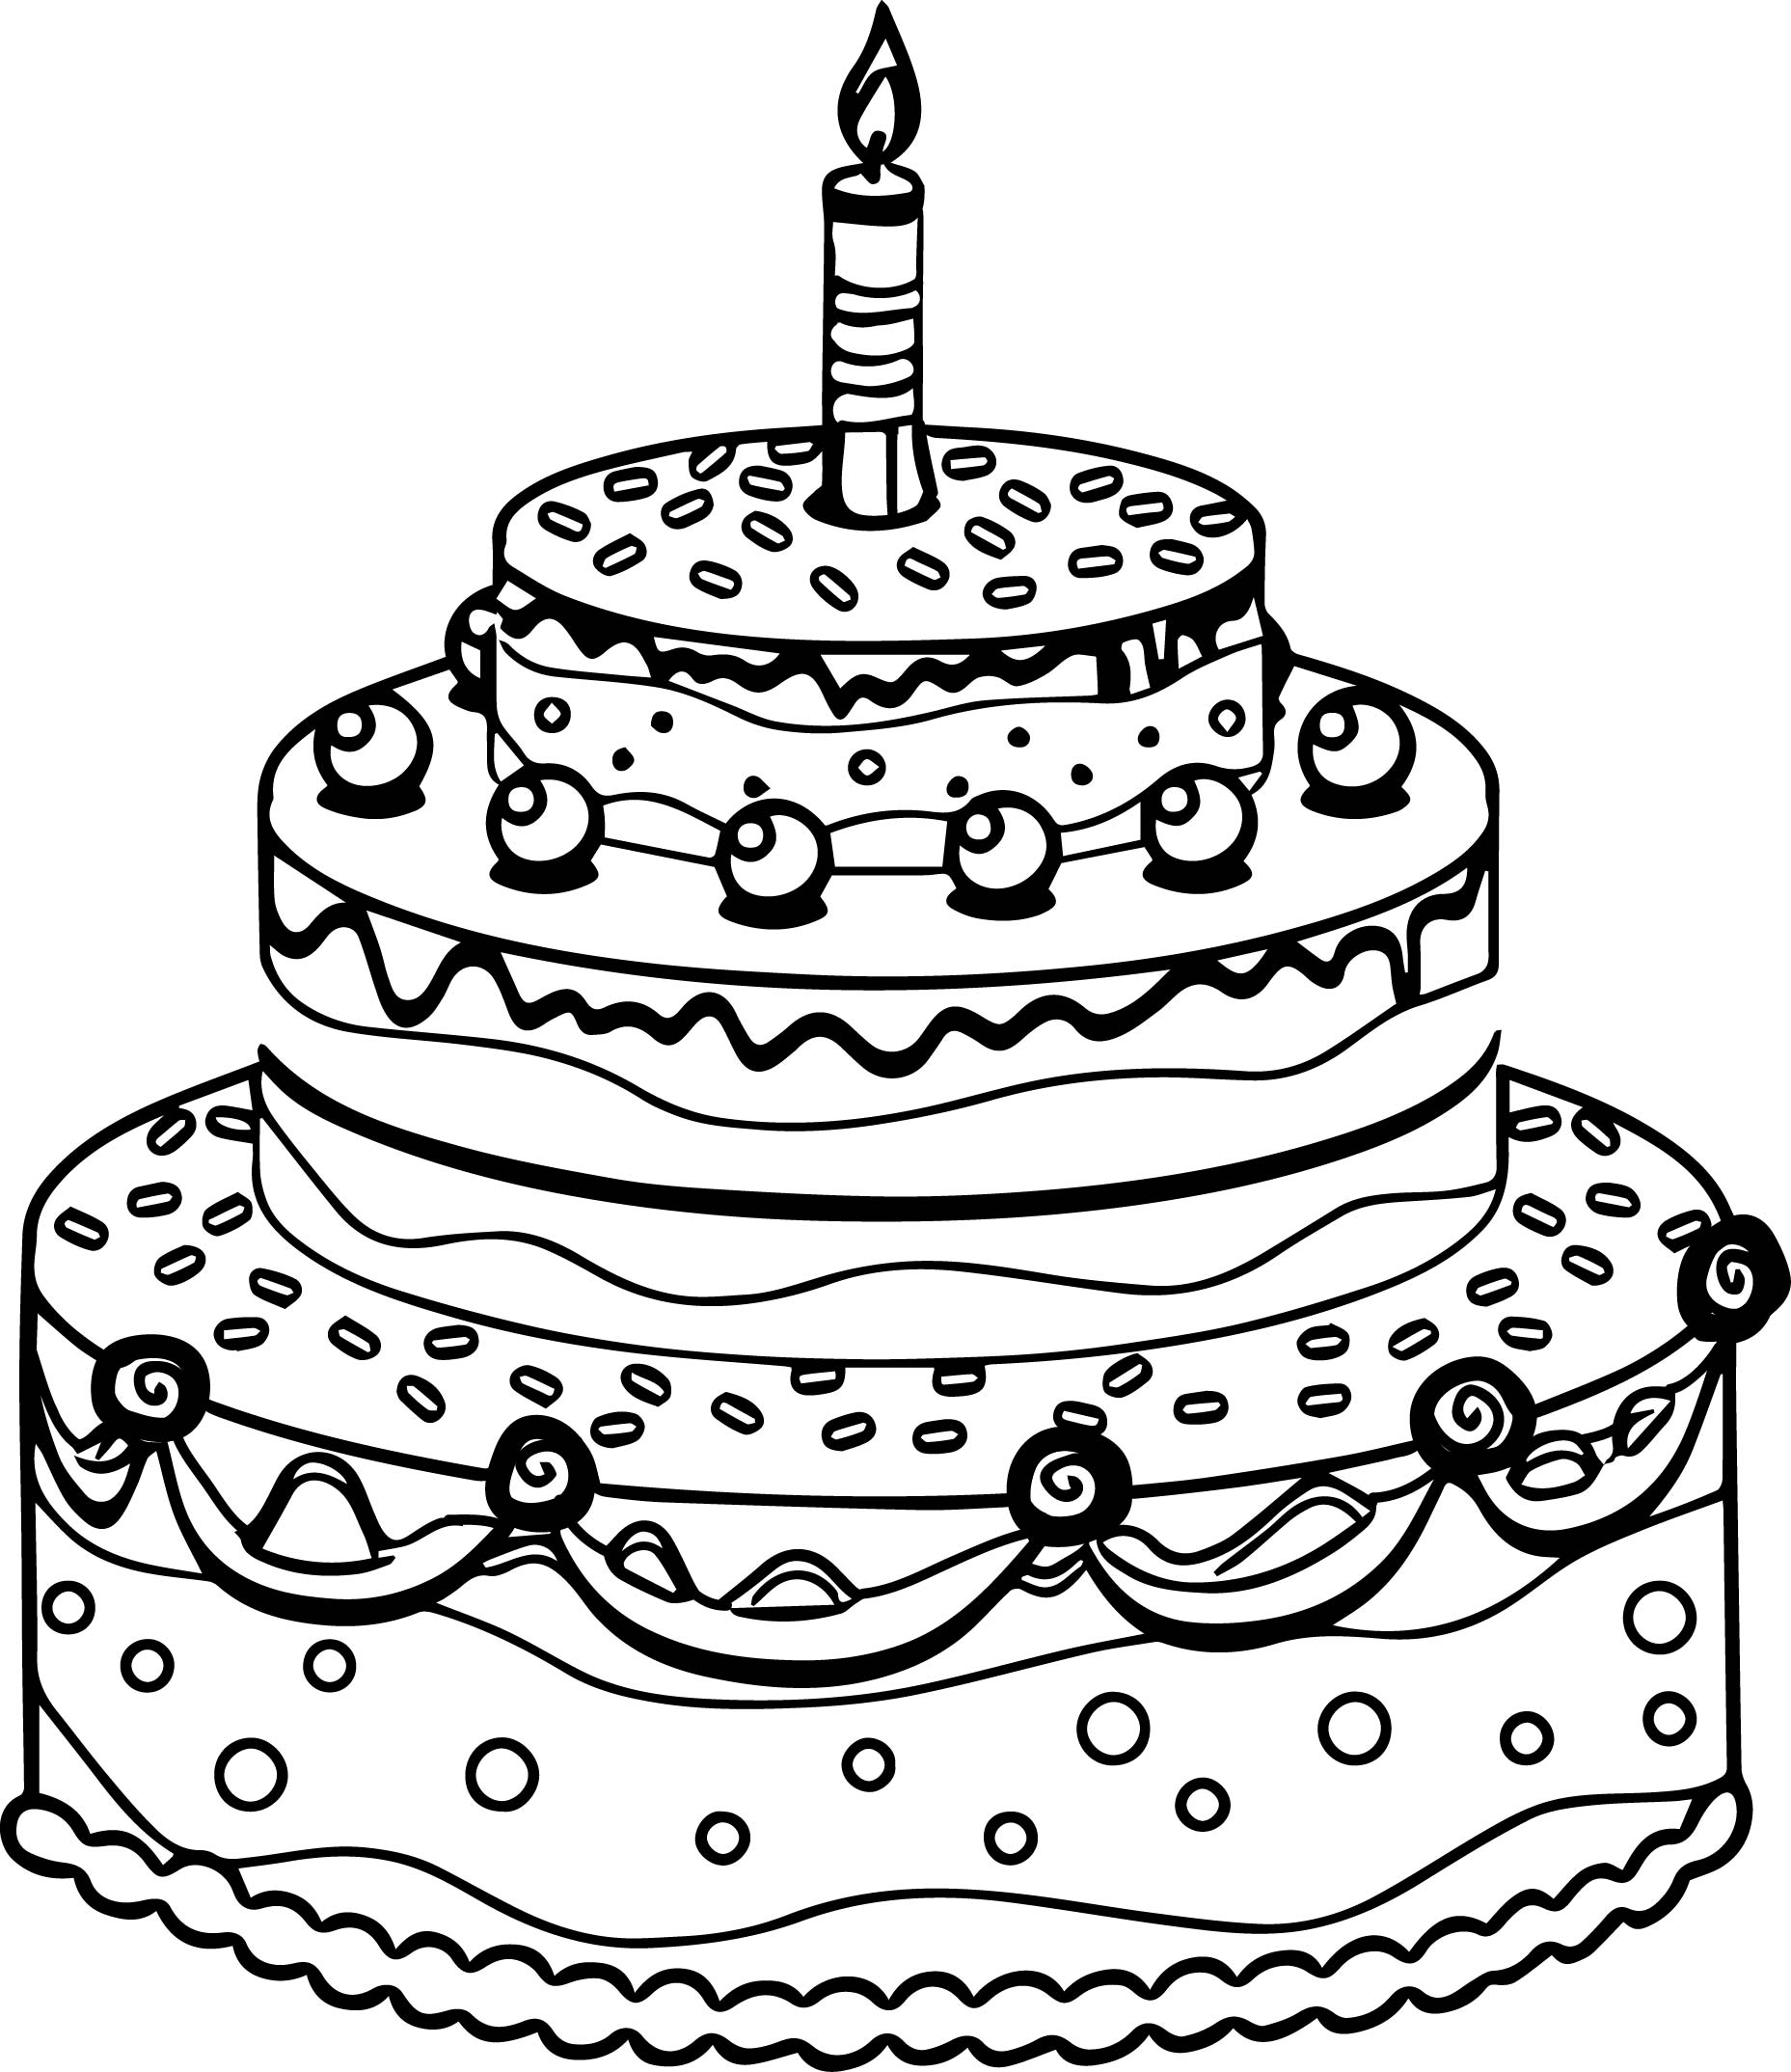 Drawing Cake Colour Cute Birthday Cake Coloring Page Wecoloringpage